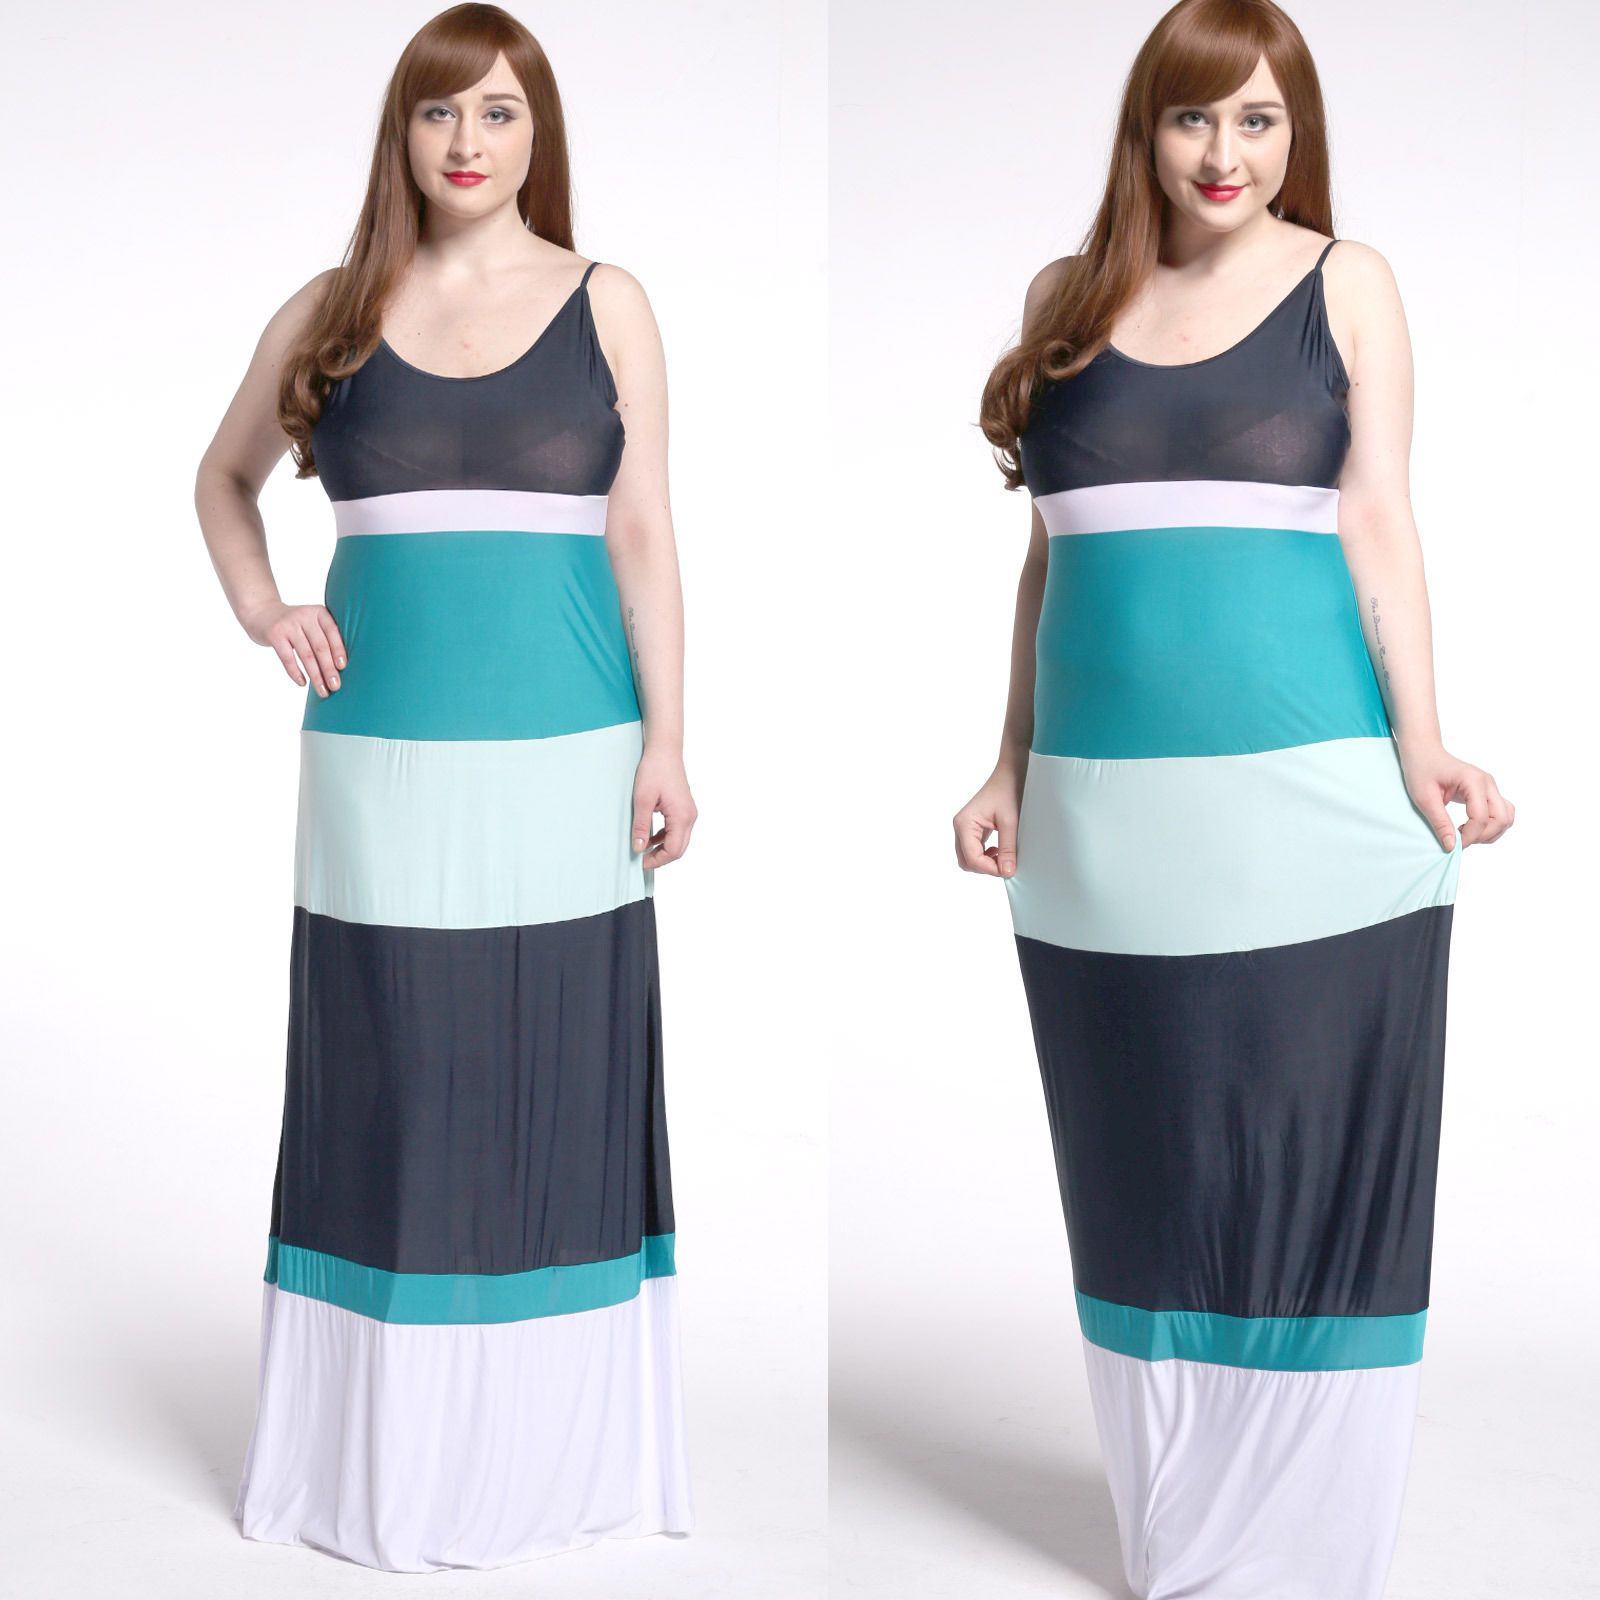 Plus size mxlstriped maxi gown womenus casual everyday party beach